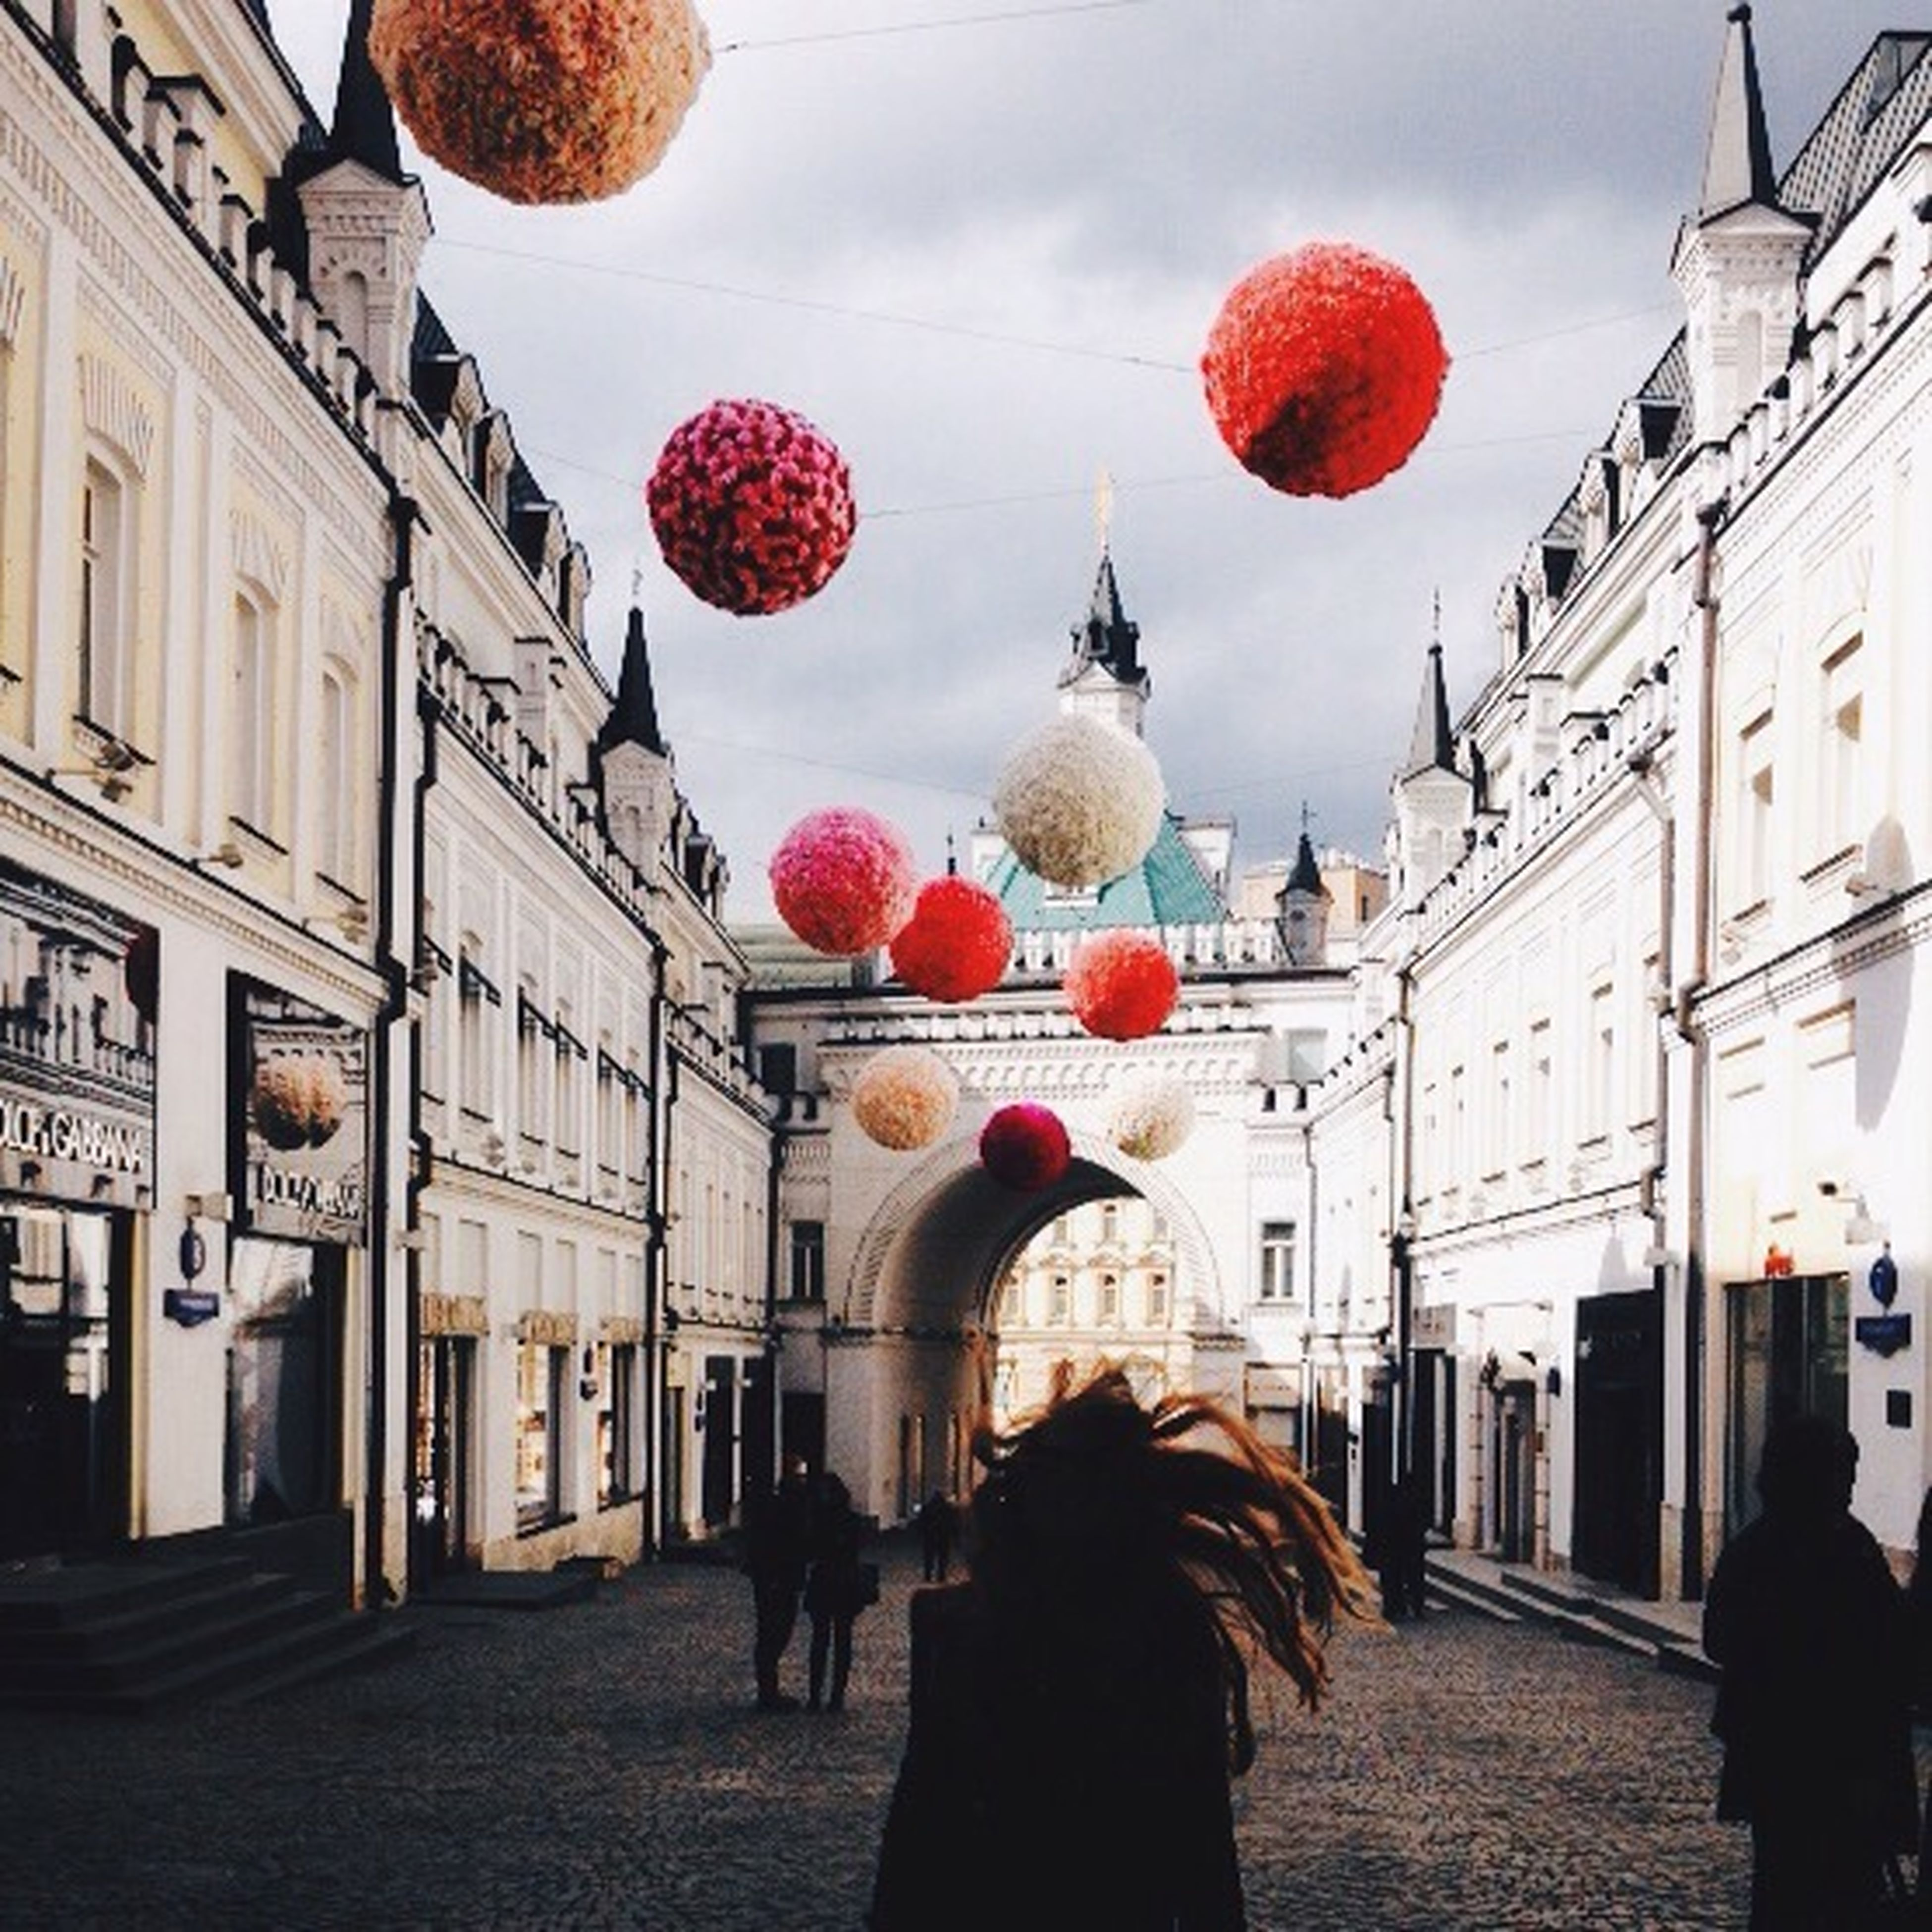 architecture, building exterior, built structure, tradition, decoration, lantern, celebration, balloon, cultures, hanging, red, traditional festival, sky, city, person, incidental people, men, outdoors, low angle view